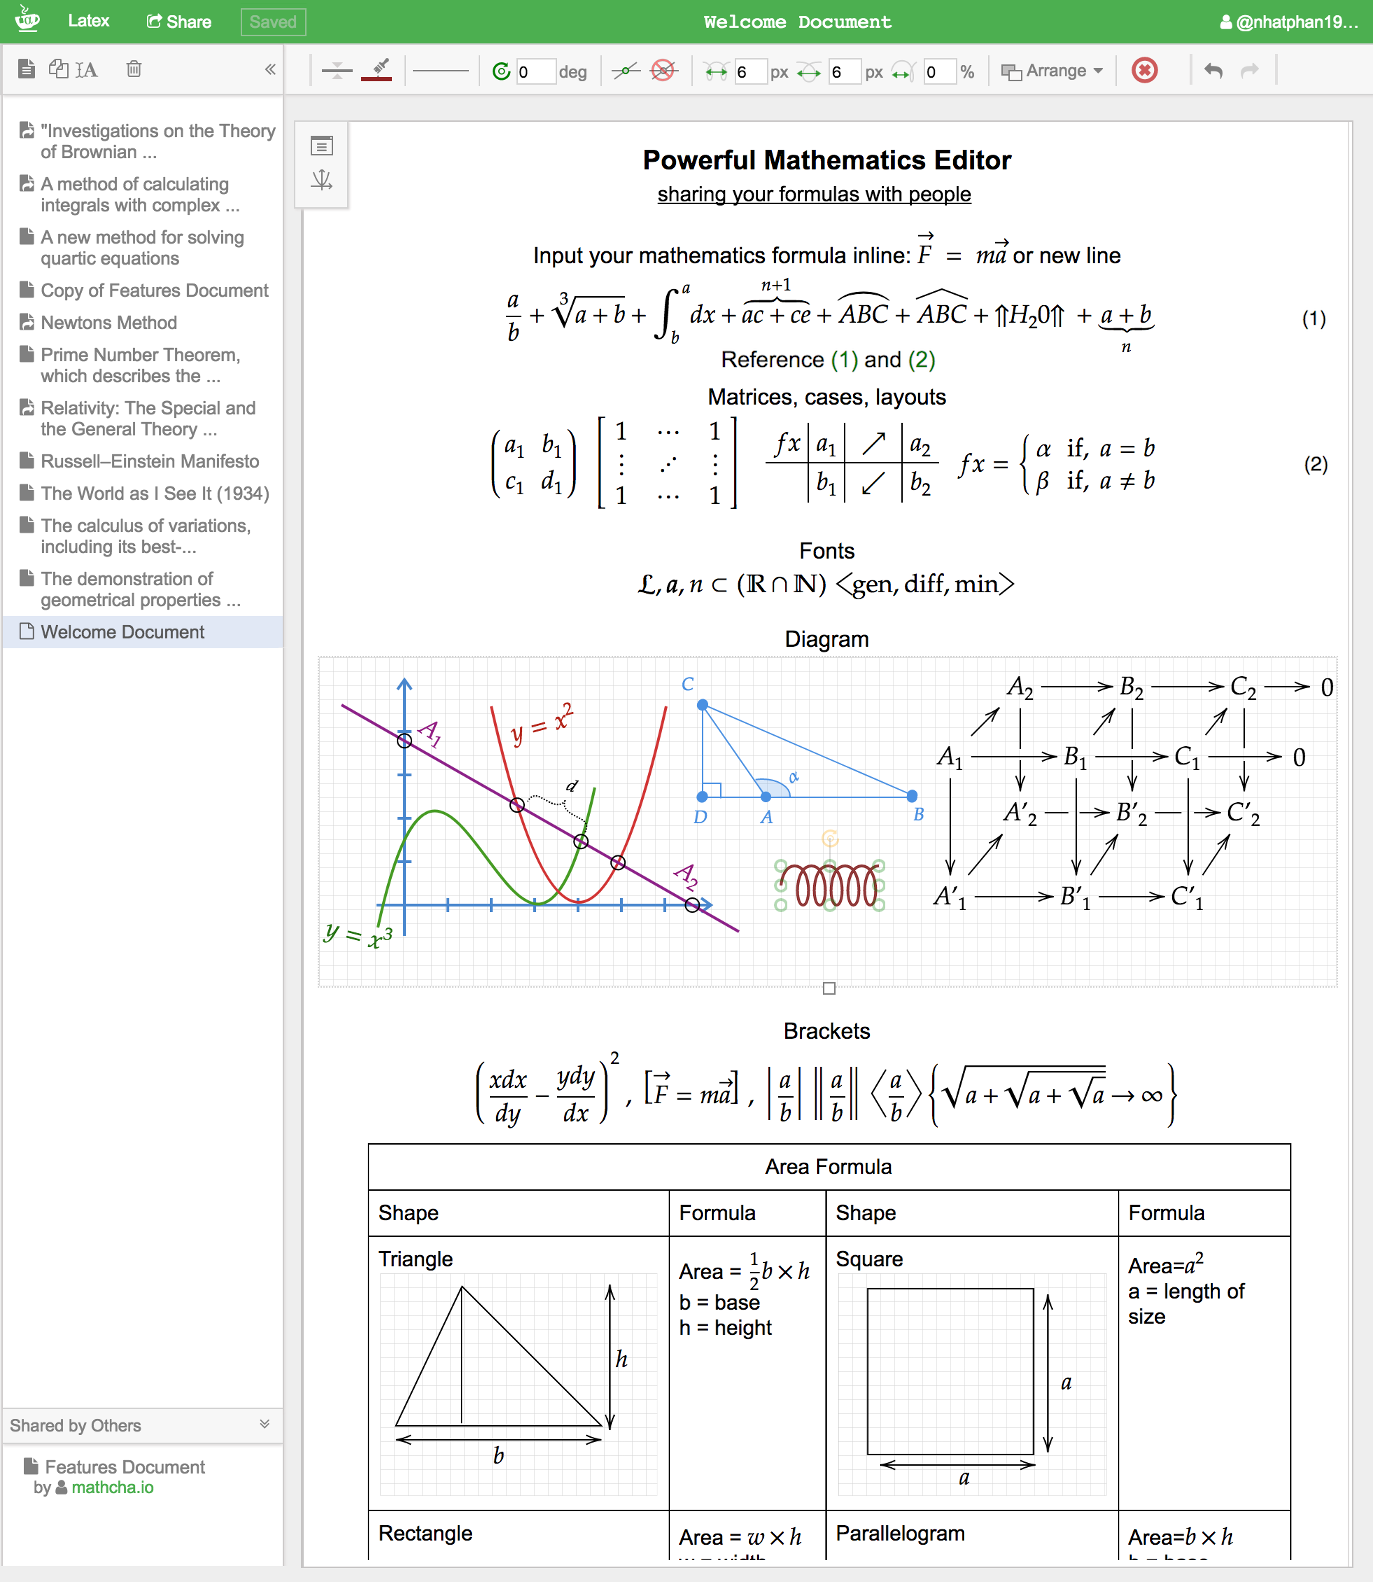 full view of mathematics editor